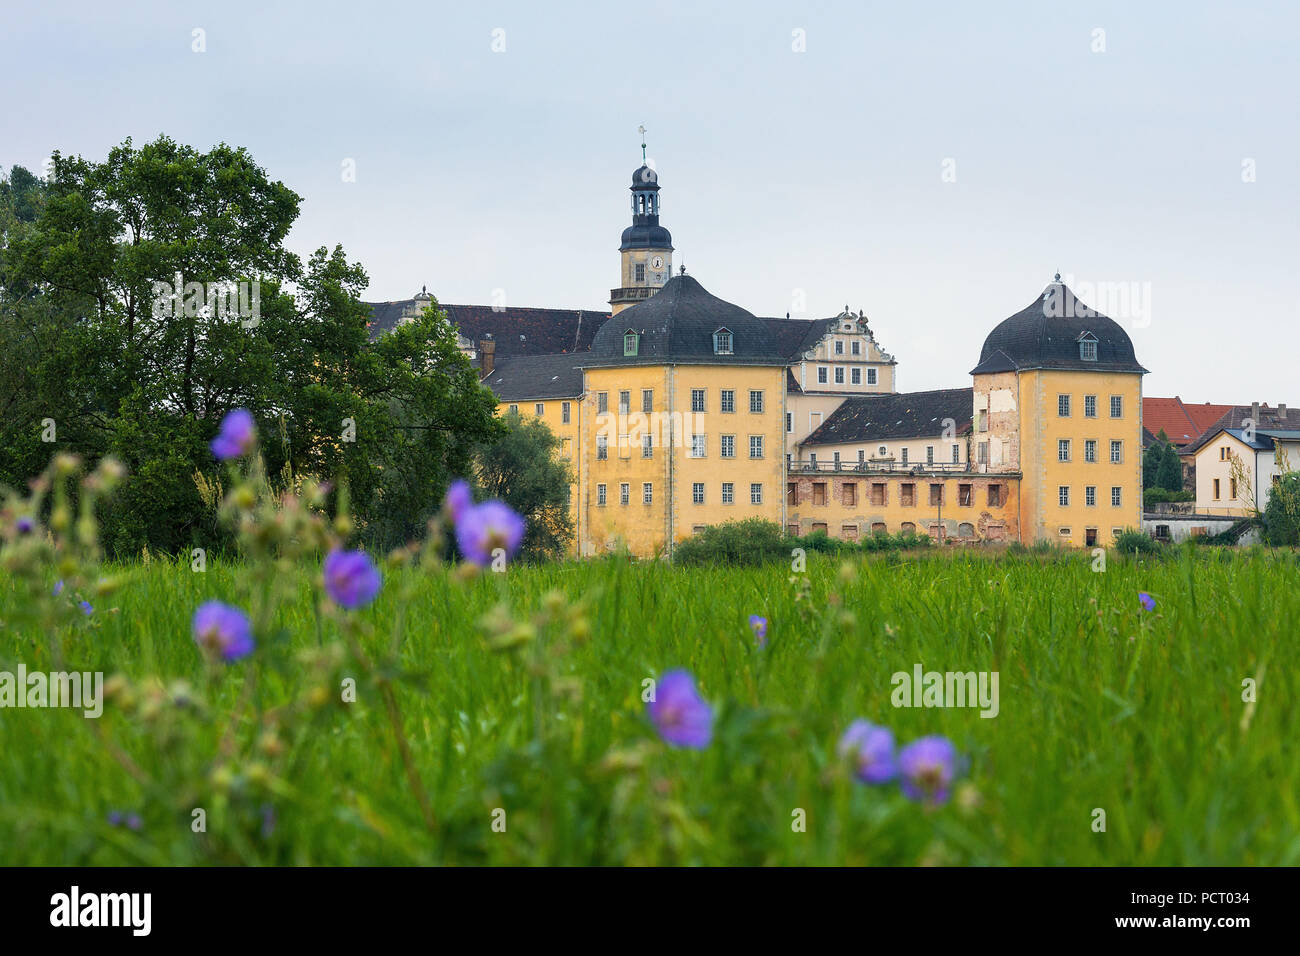 Elbe Cycletour, Coswig (Anhalt), castle, aristocratic seat - Stock Image